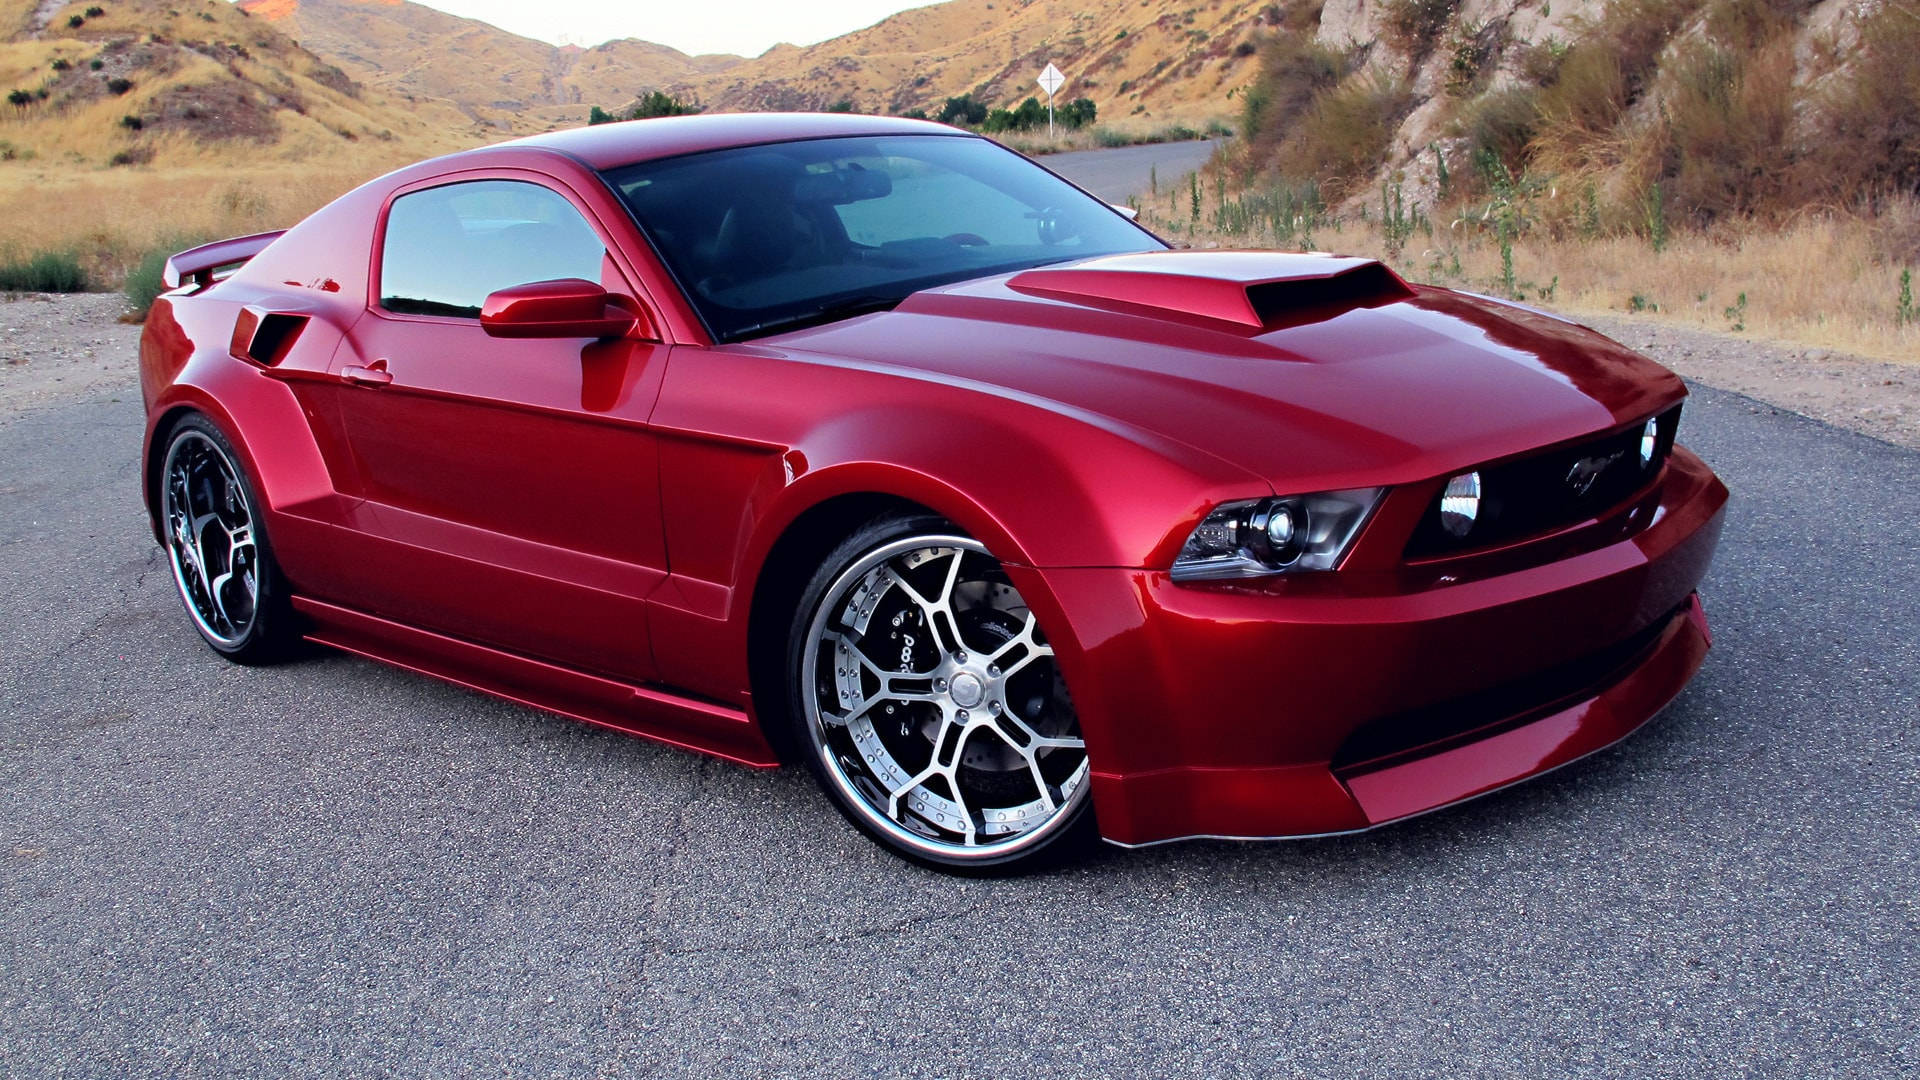 ford mustang gt hd desktop wallpapers | 7wallpapers